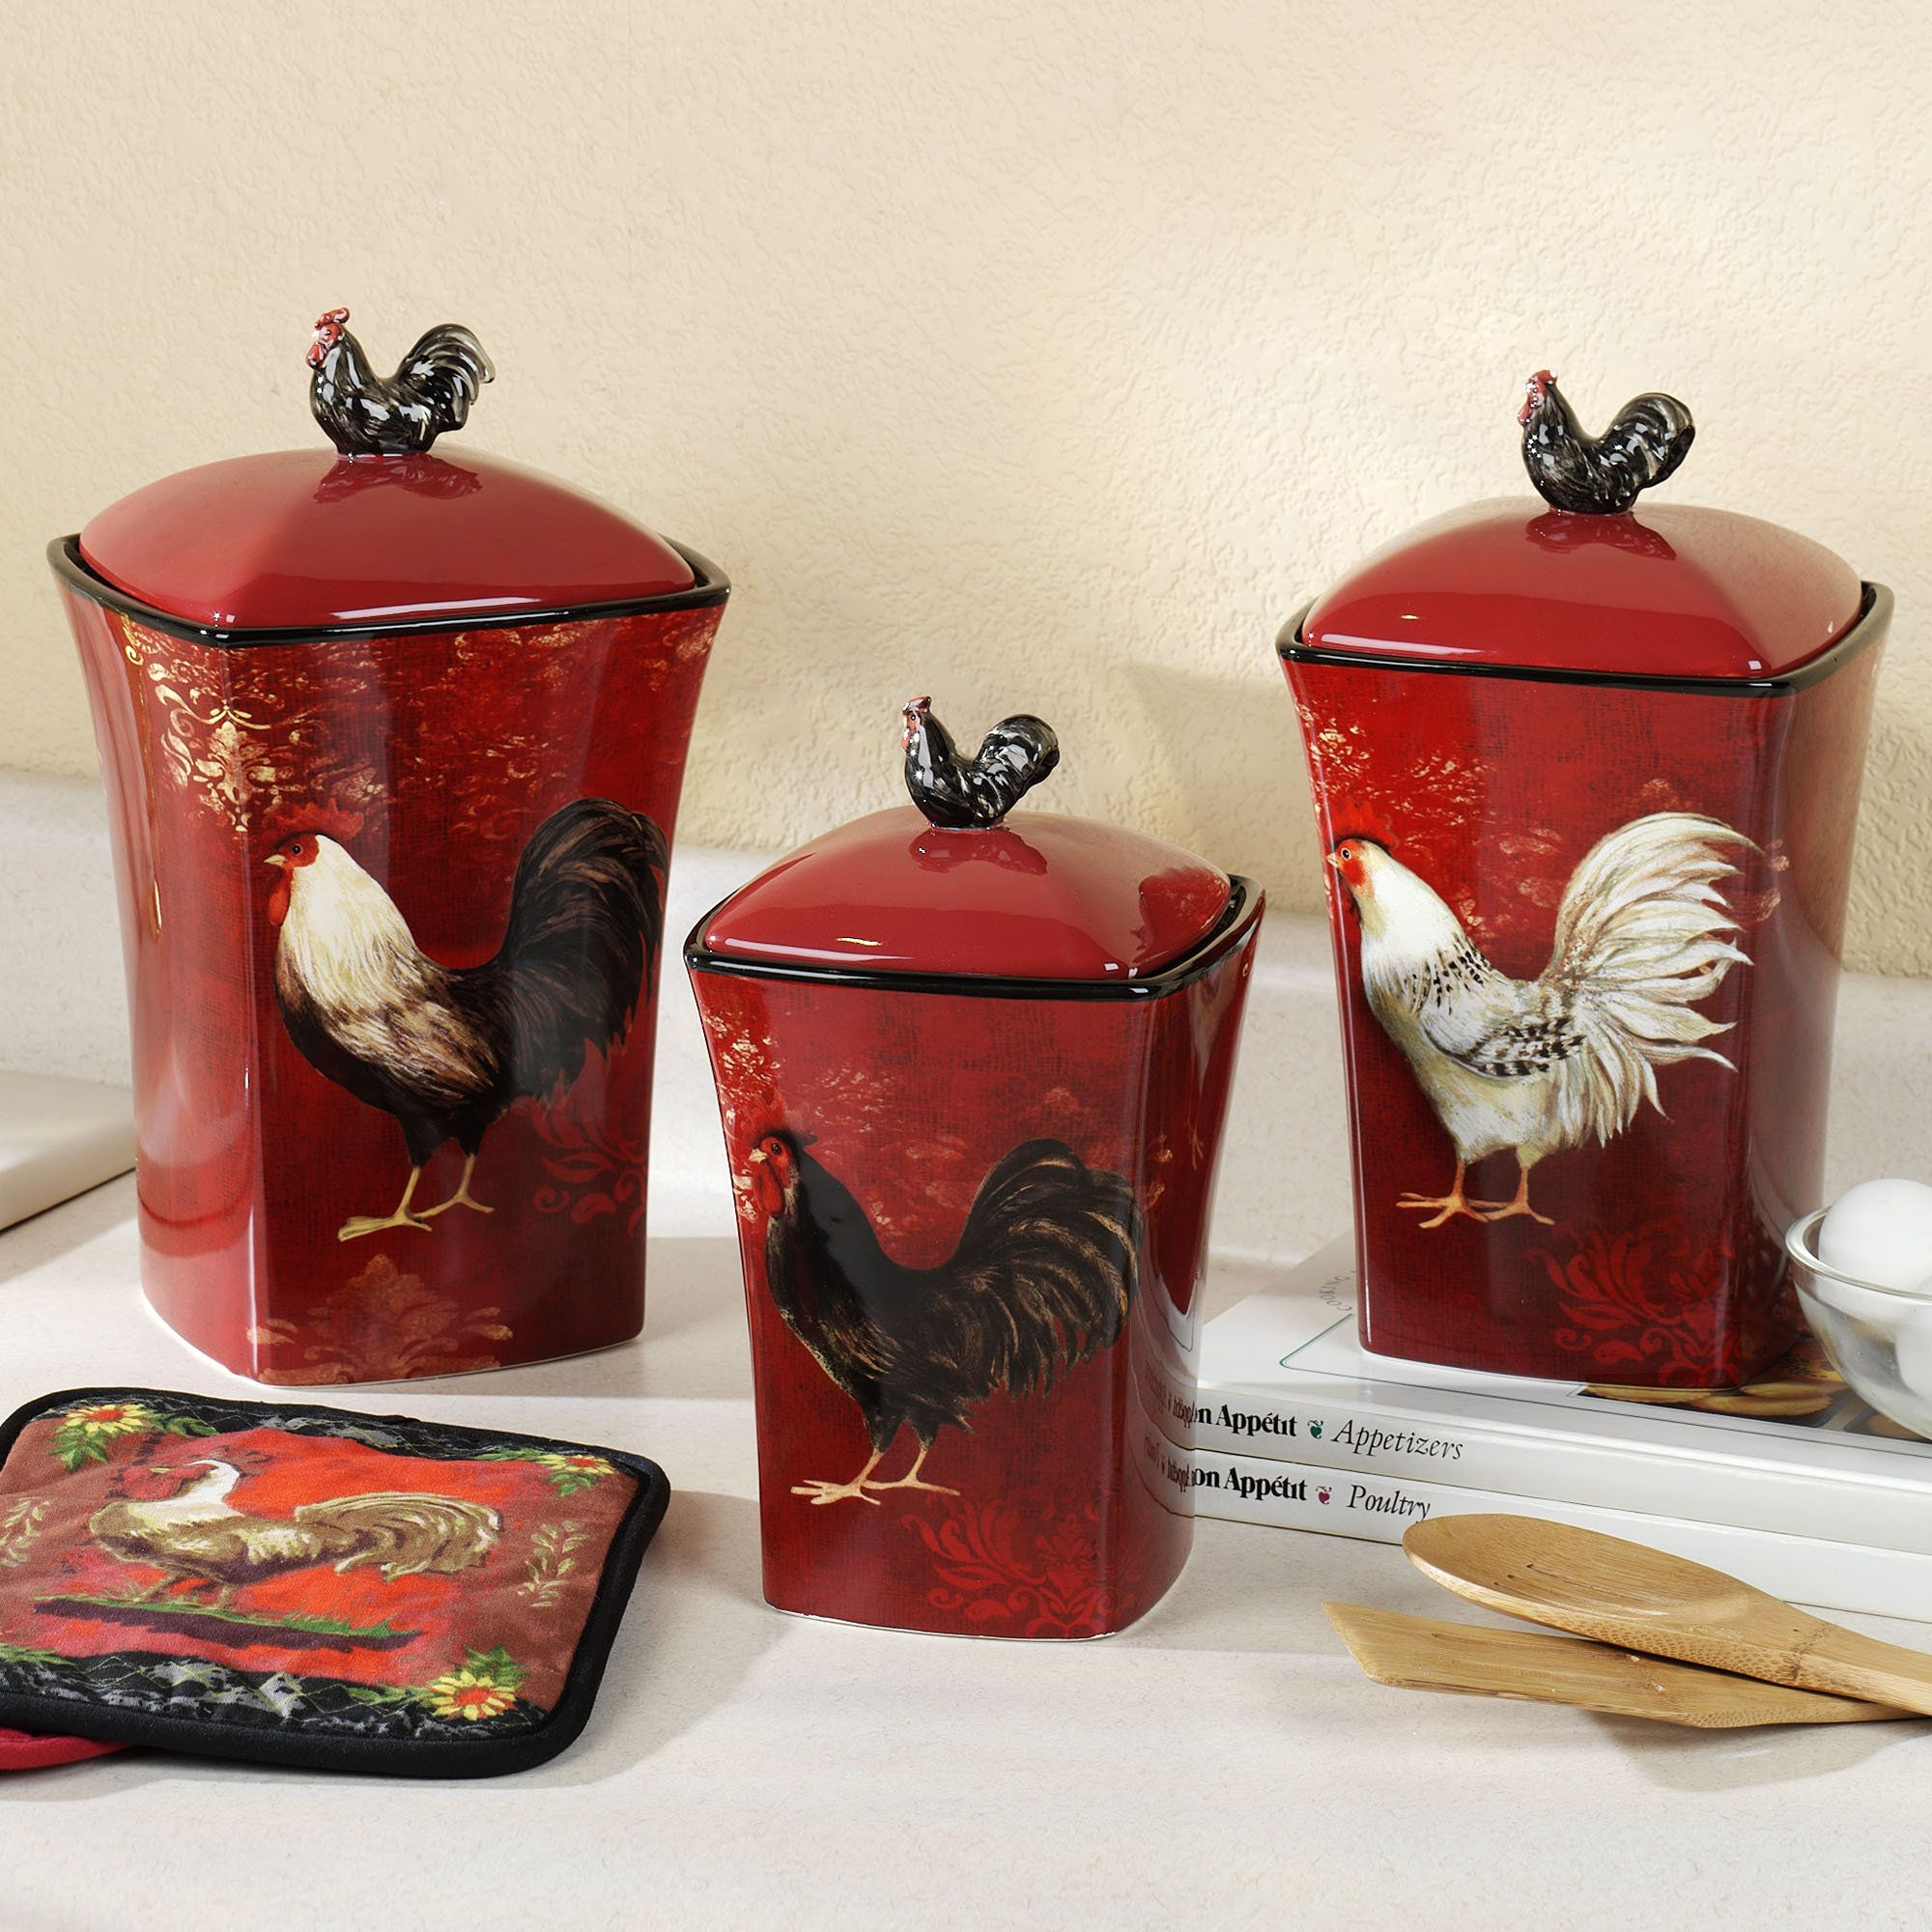 Chicken Kitchen Decor Kitchen Theme Decor Sets Images15  Chicken Kitchen Decor